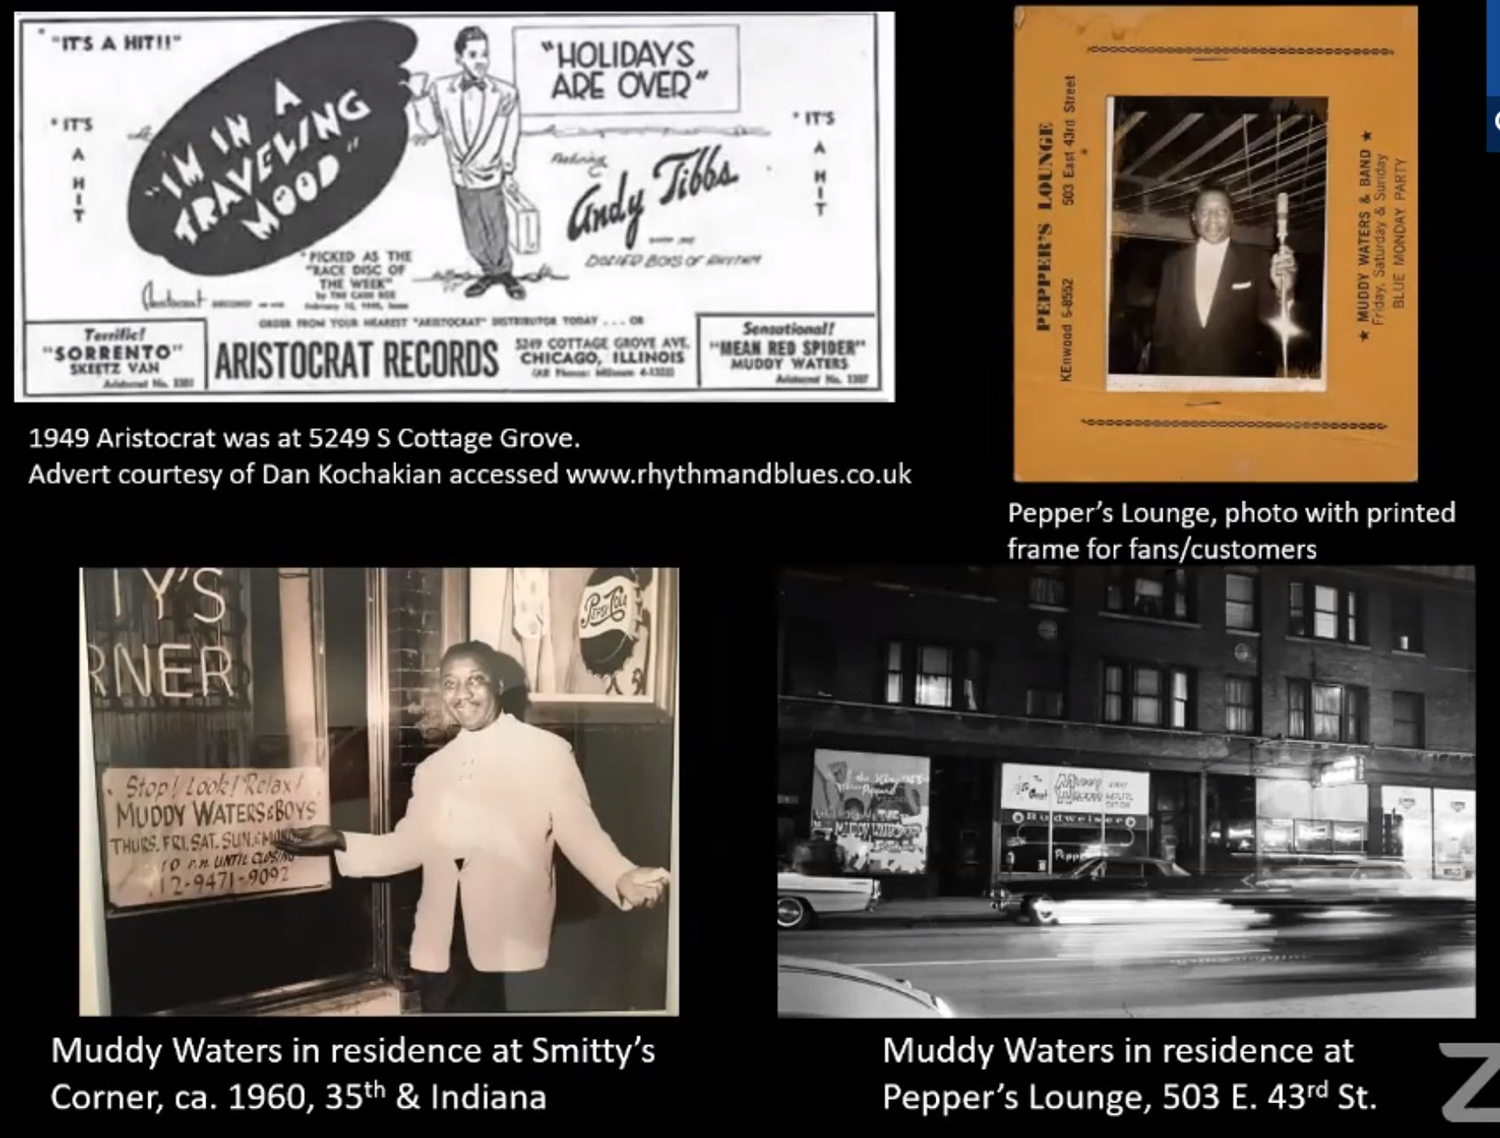 Historic Images of Nightlife Associated with Muddy Waters. Images by CCL